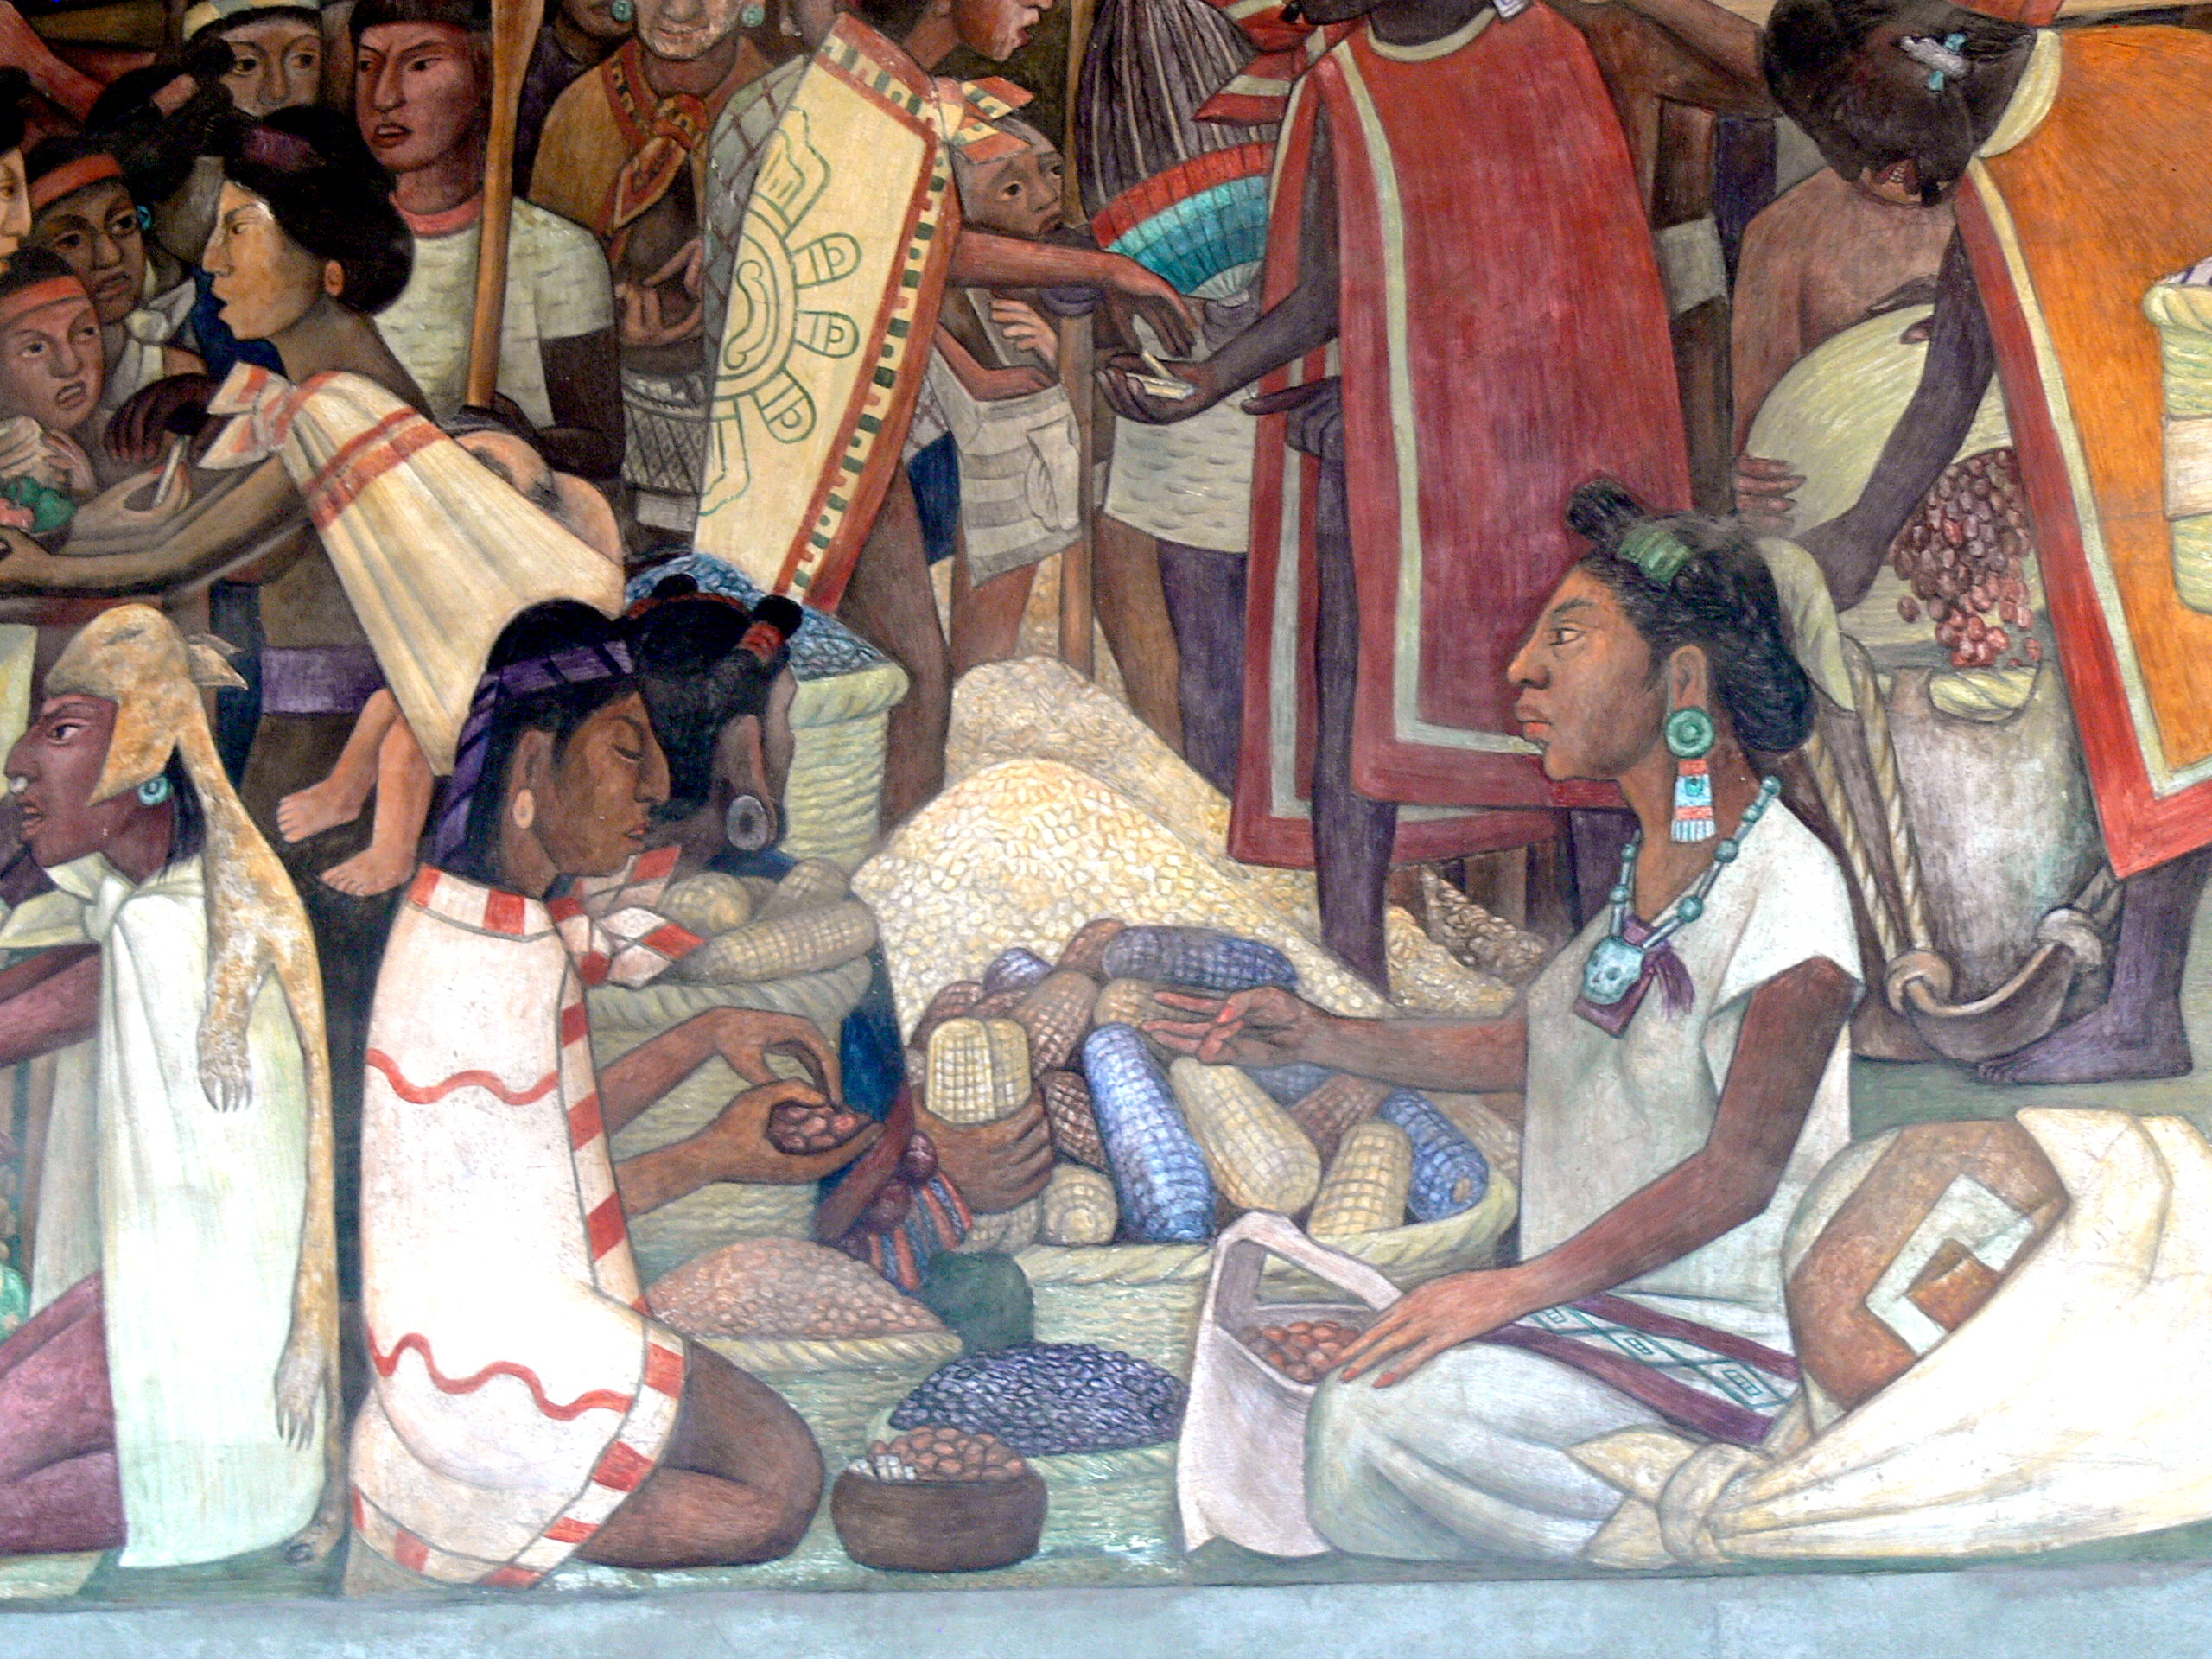 two seated Aztec merchants trading what looks like nuts